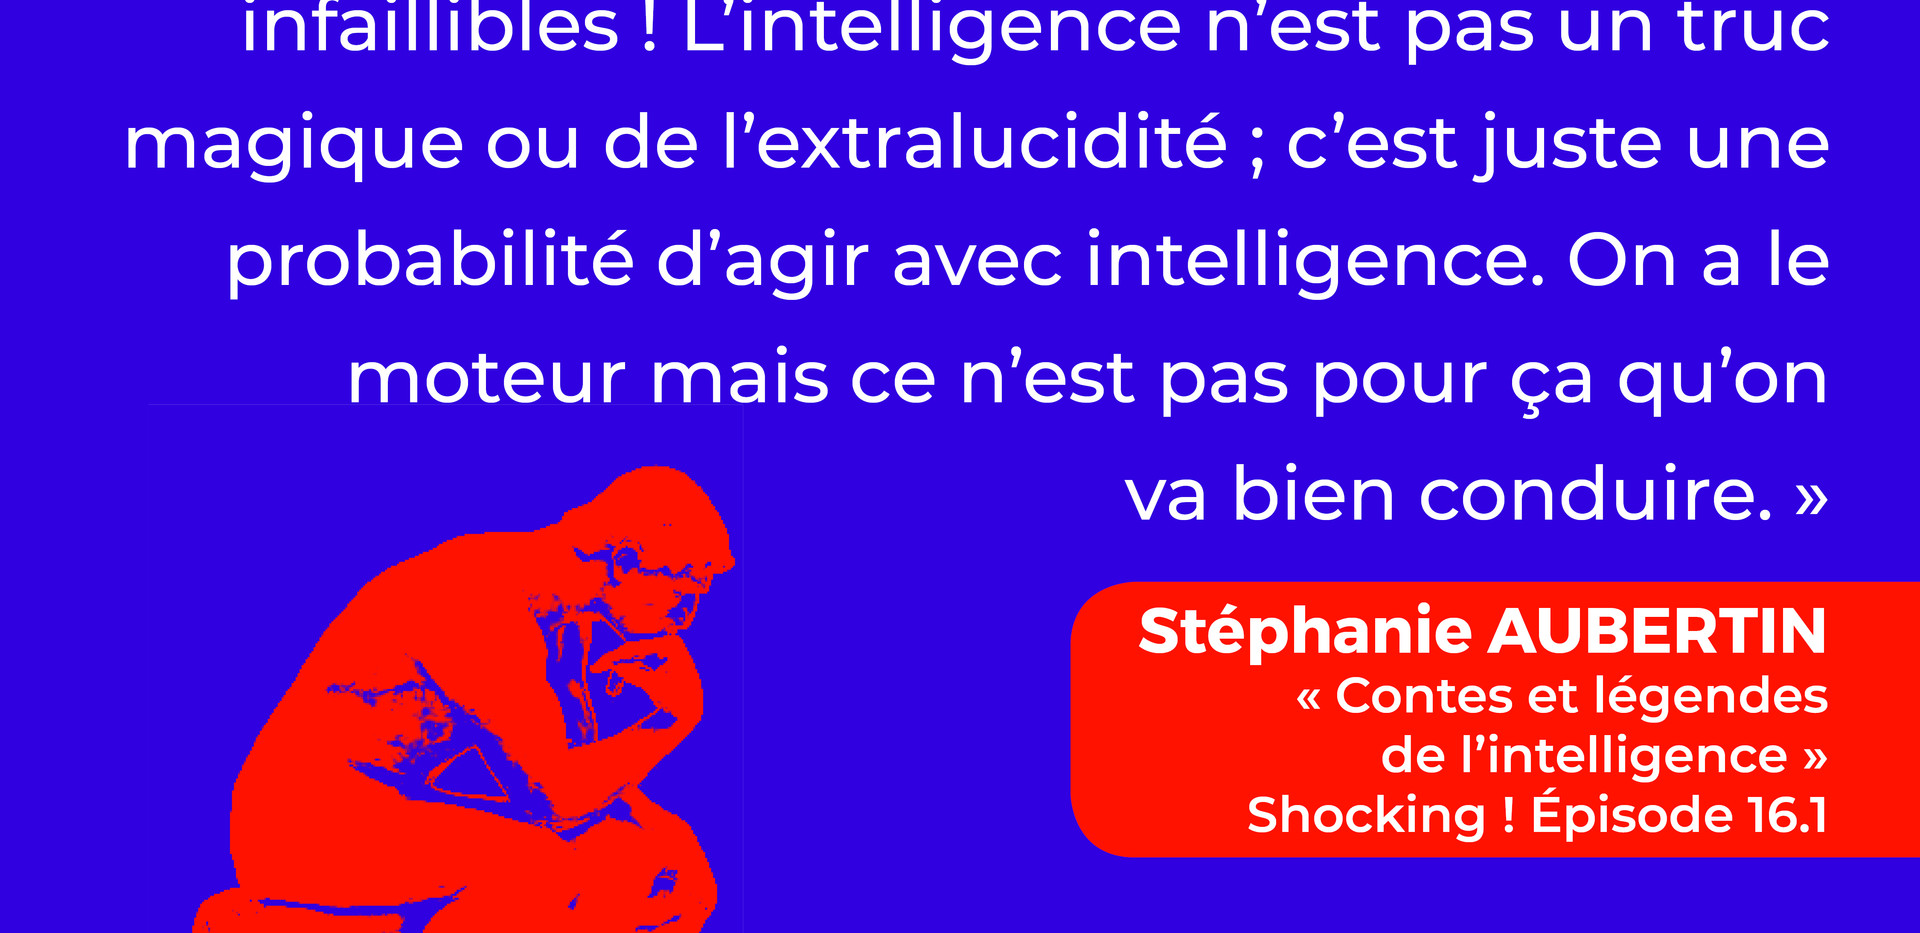 L'intelligence peut rendre idiot !